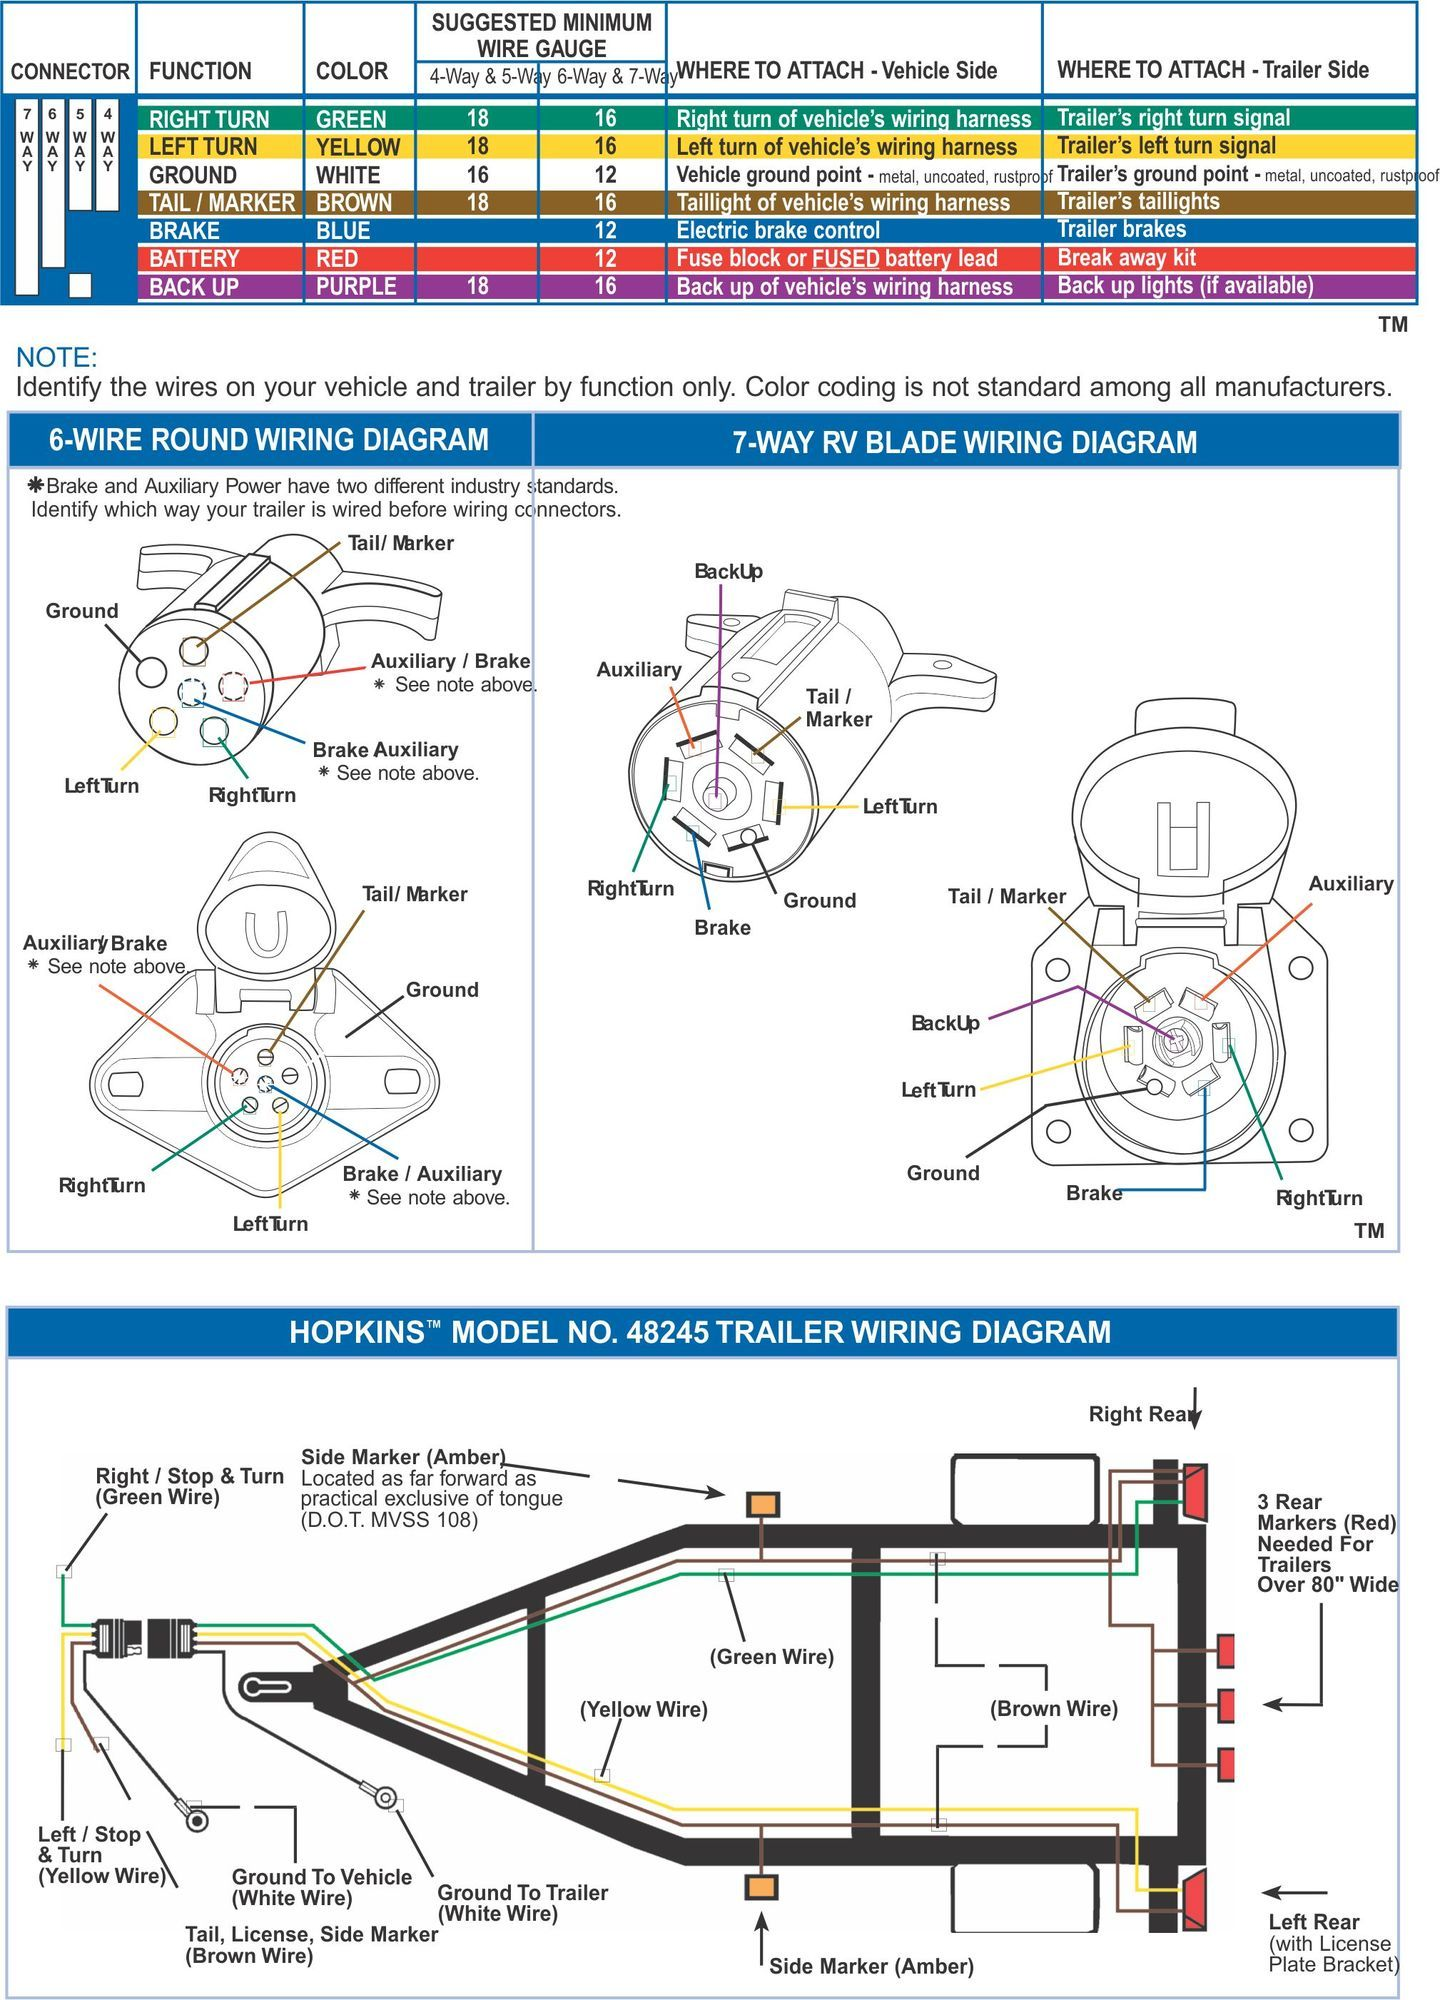 Unique Wiring Diagram for Doorbell Lighted Trailer